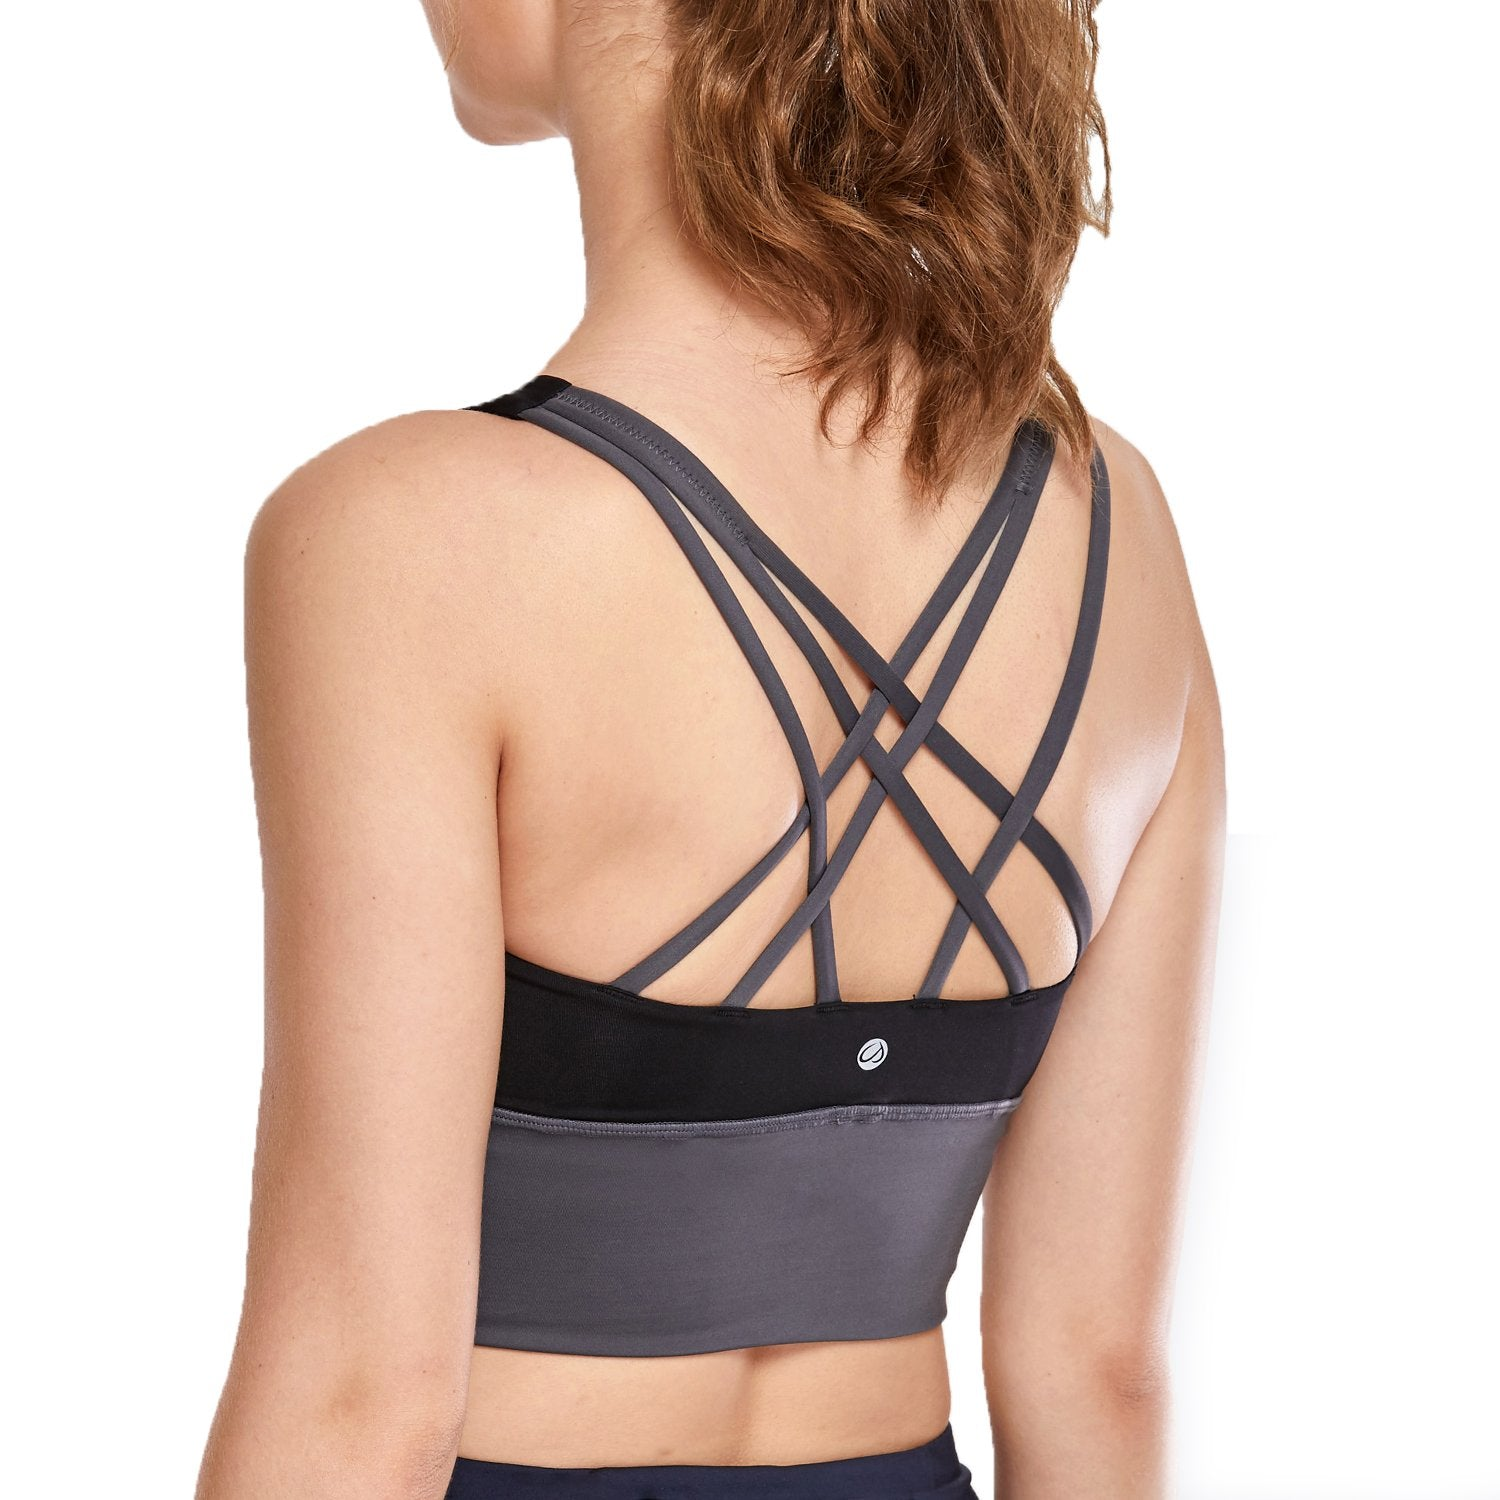 SYROKAN Women's Medium Support Strappy Back Wirefree Removable Cups Longline Yoga Sports Bra - Alilight.net